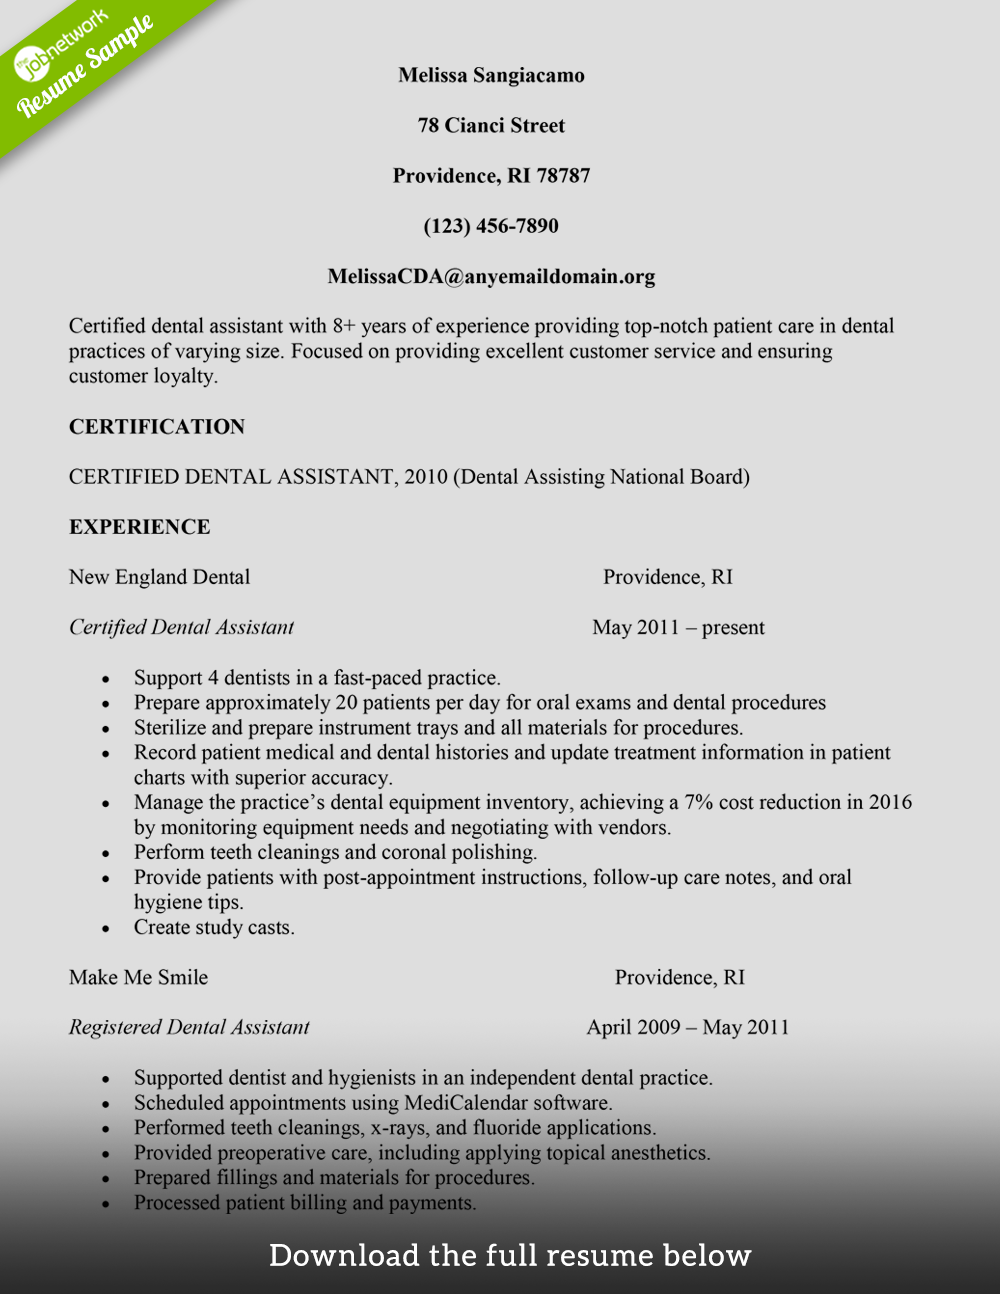 Registered Dental Assistant Resume How To Build A Great Dental Assistant Resume Examples Included